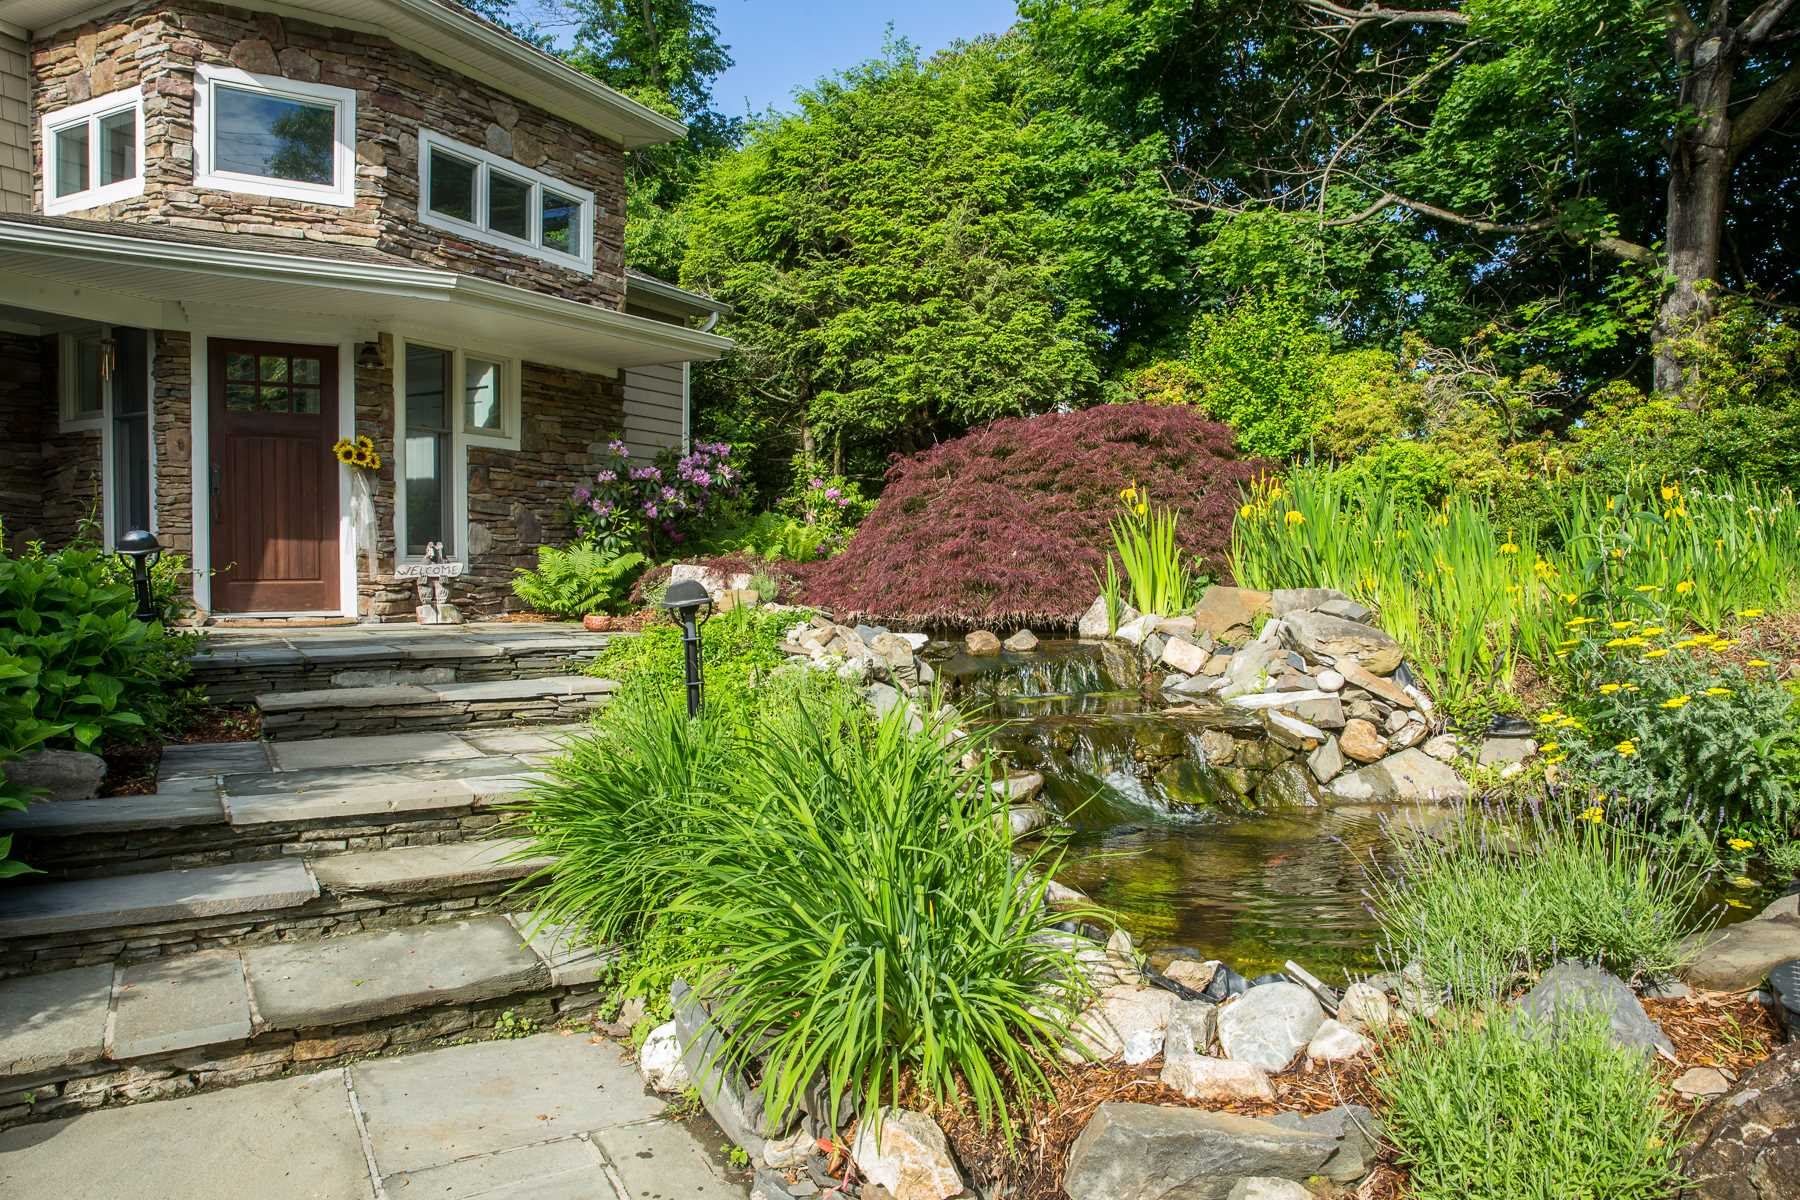 Single Family Home for Sale at 106 CHELSEA Road 106 CHELSEA Road Wappinger, New York 12590 United States